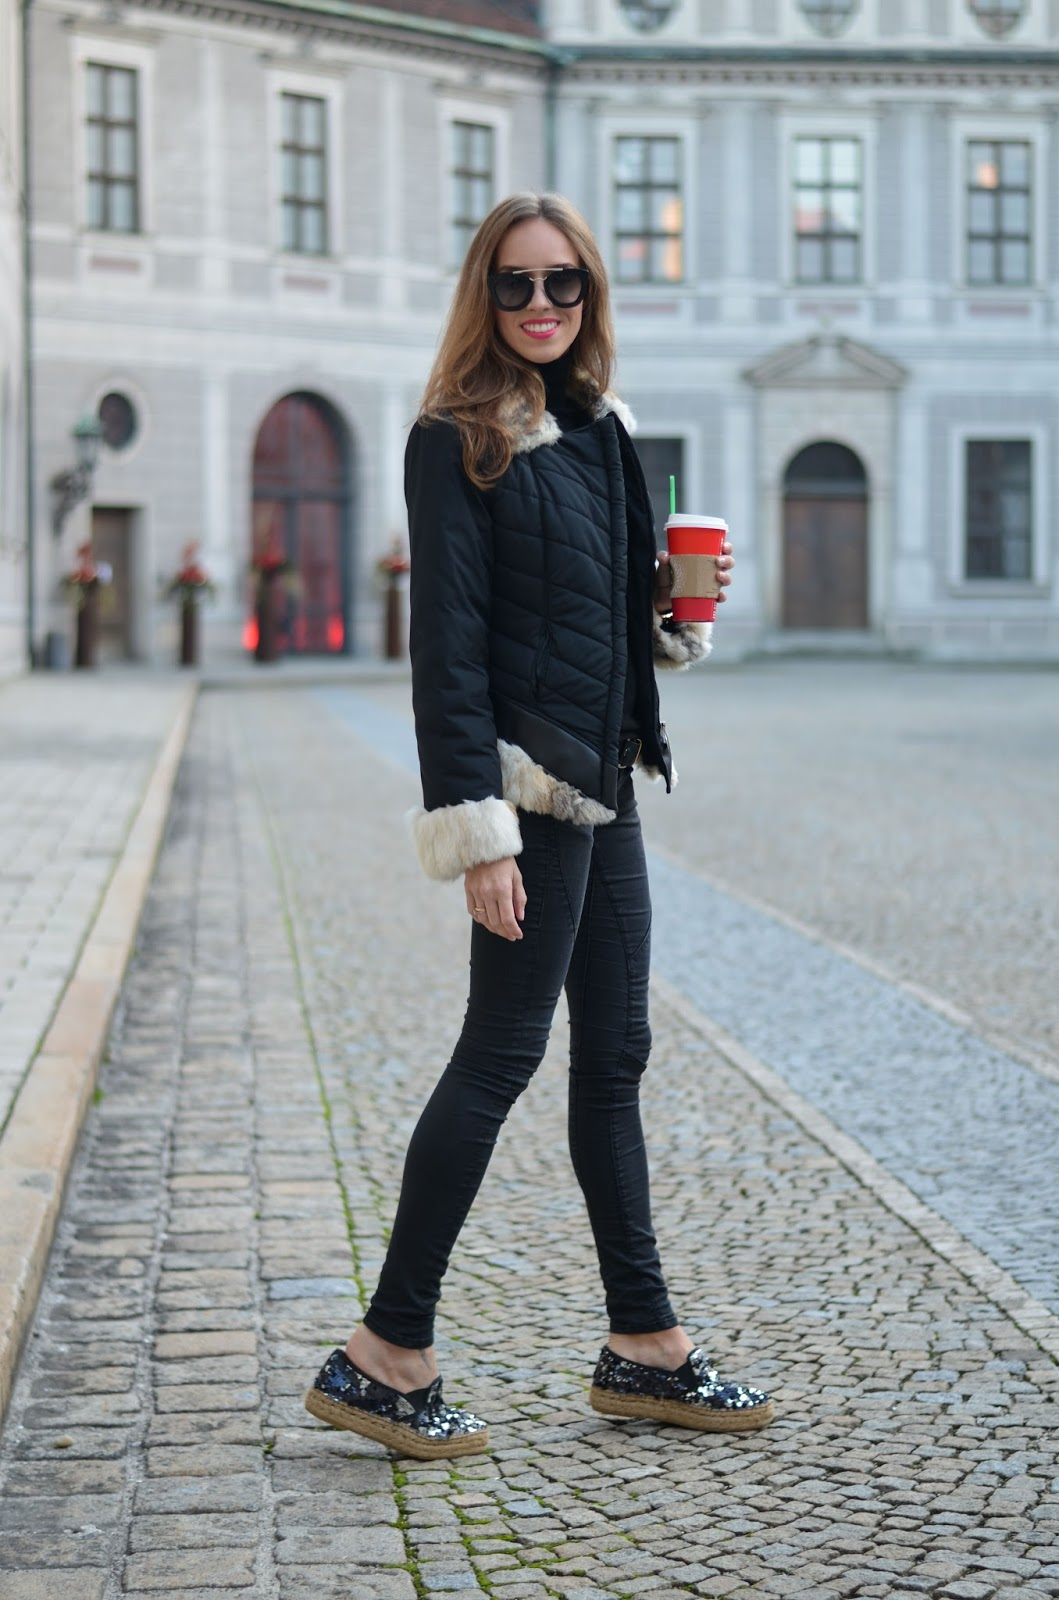 kristjaana mere rabbit fur jacket black jeans winter outfit